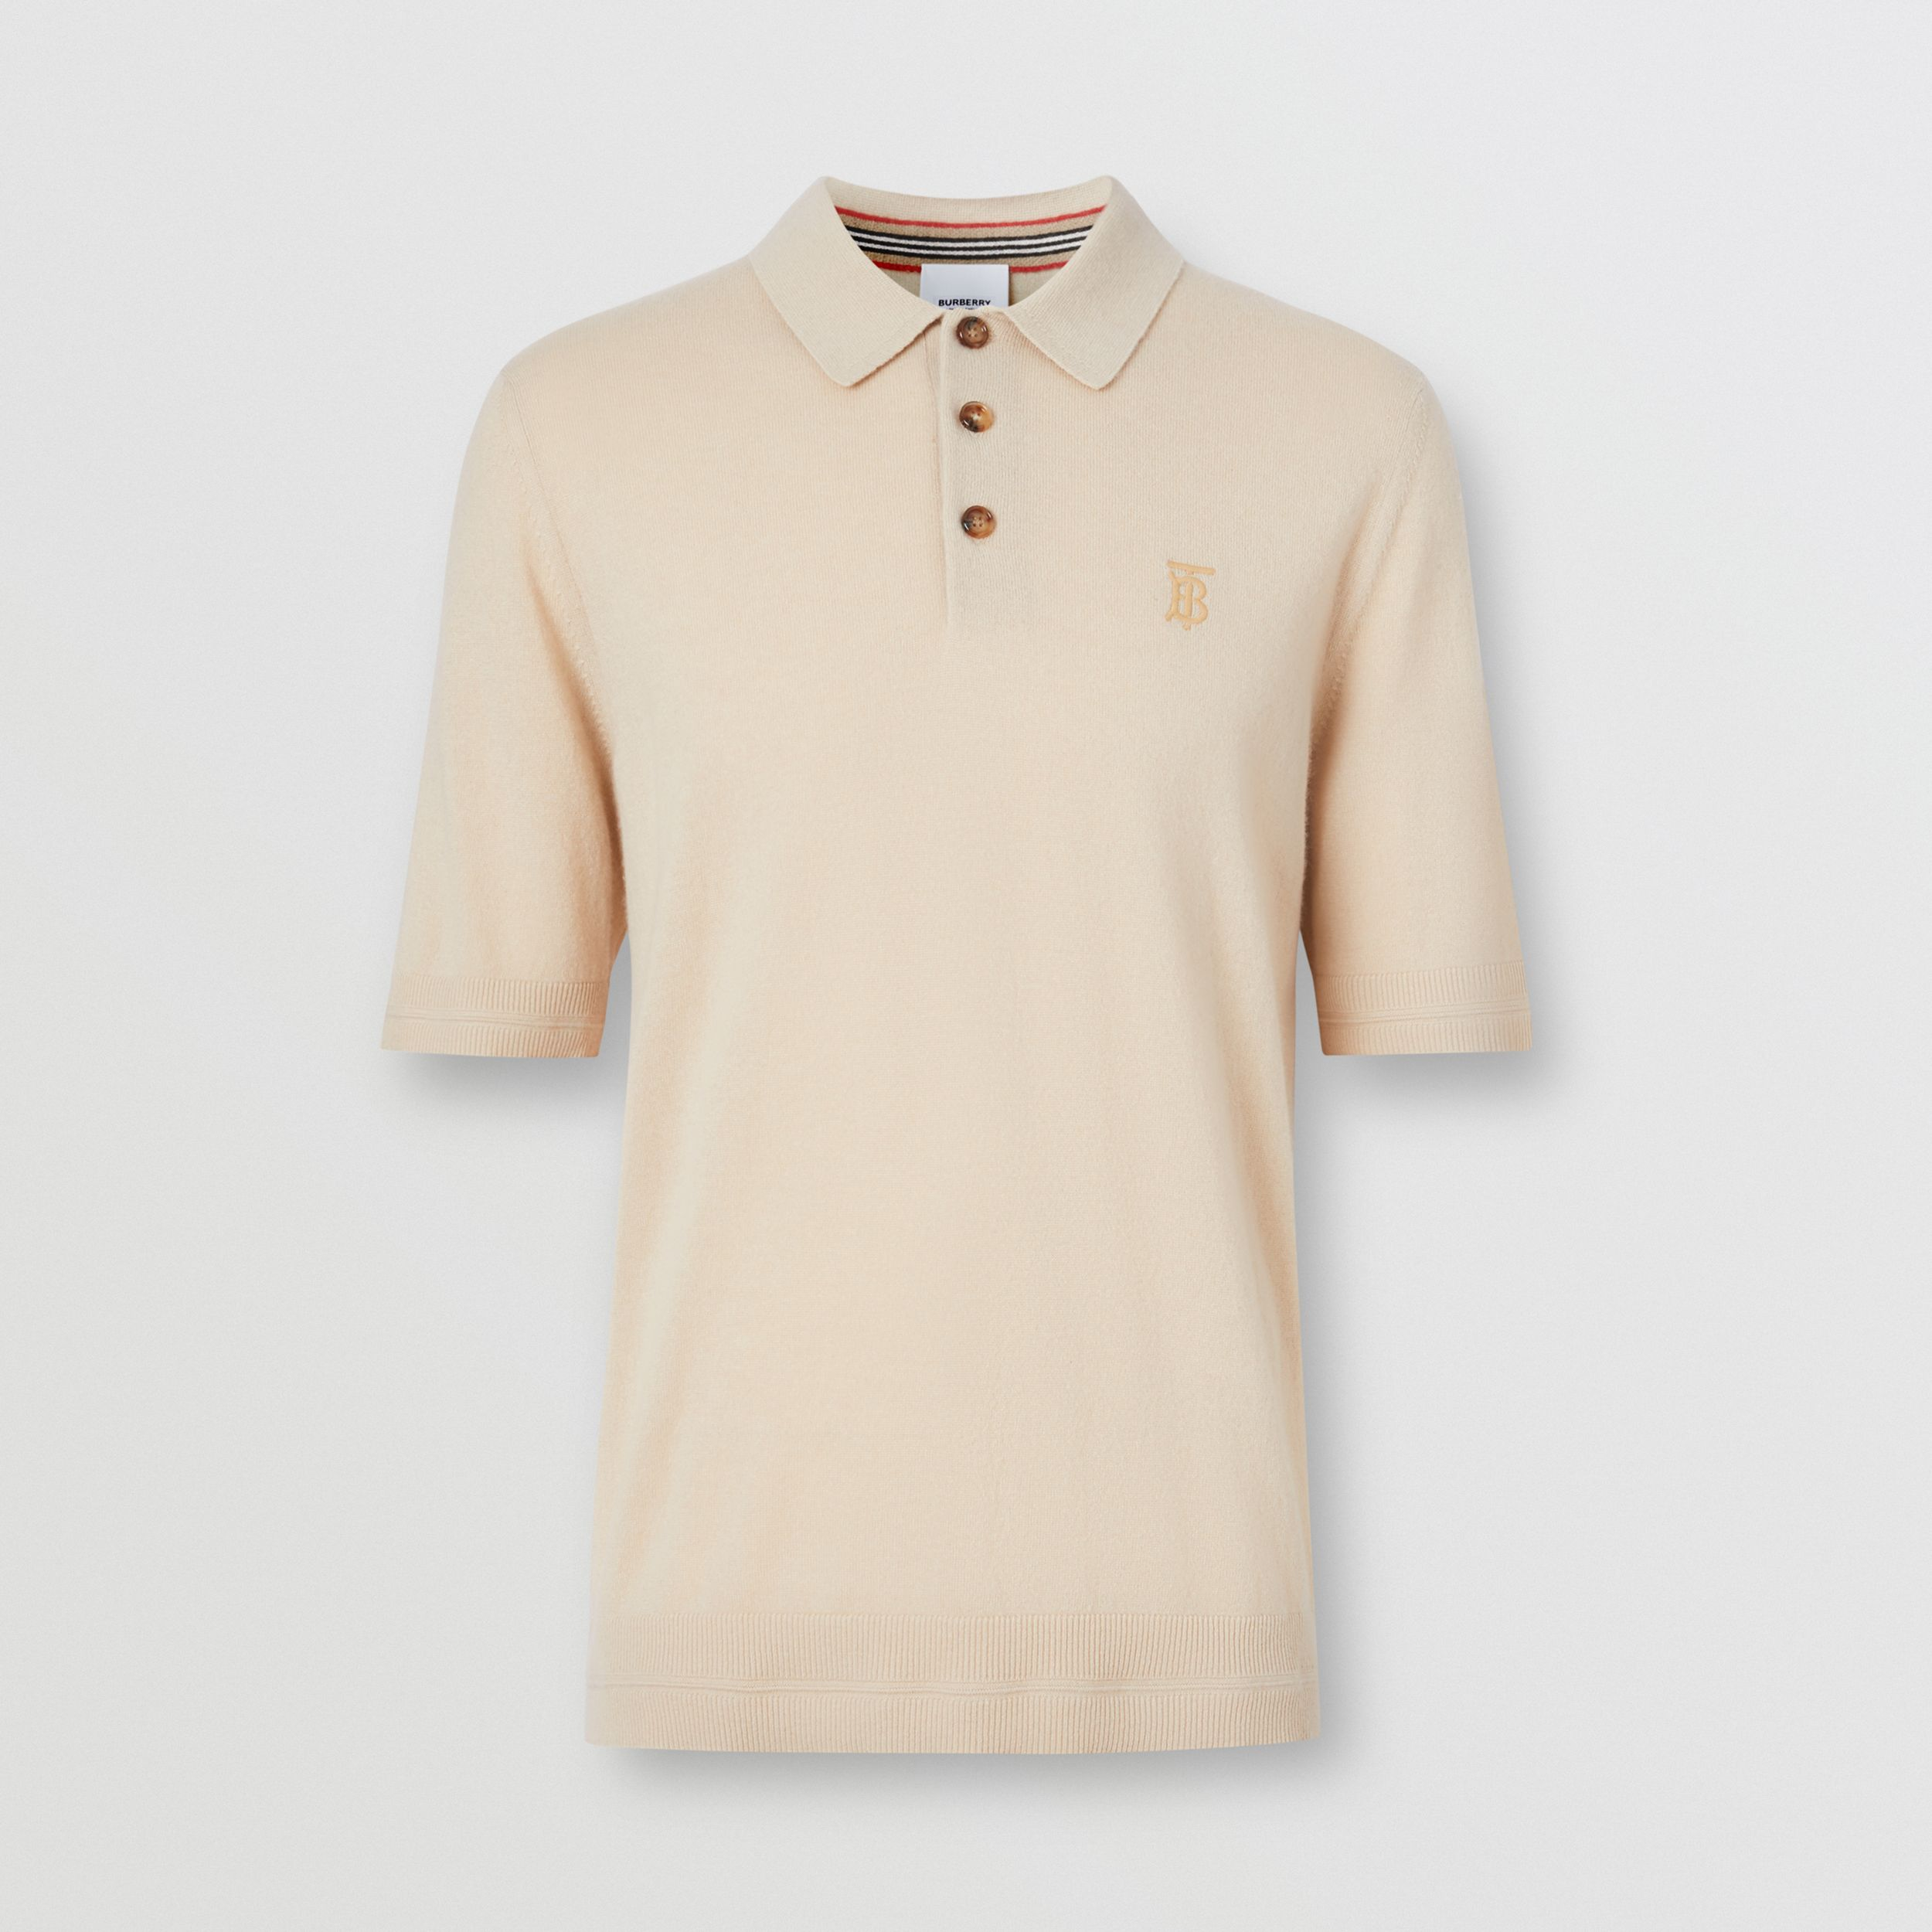 Monogram Motif Cashmere Polo Shirt in Soft Fawn - Men | Burberry United Kingdom - 4